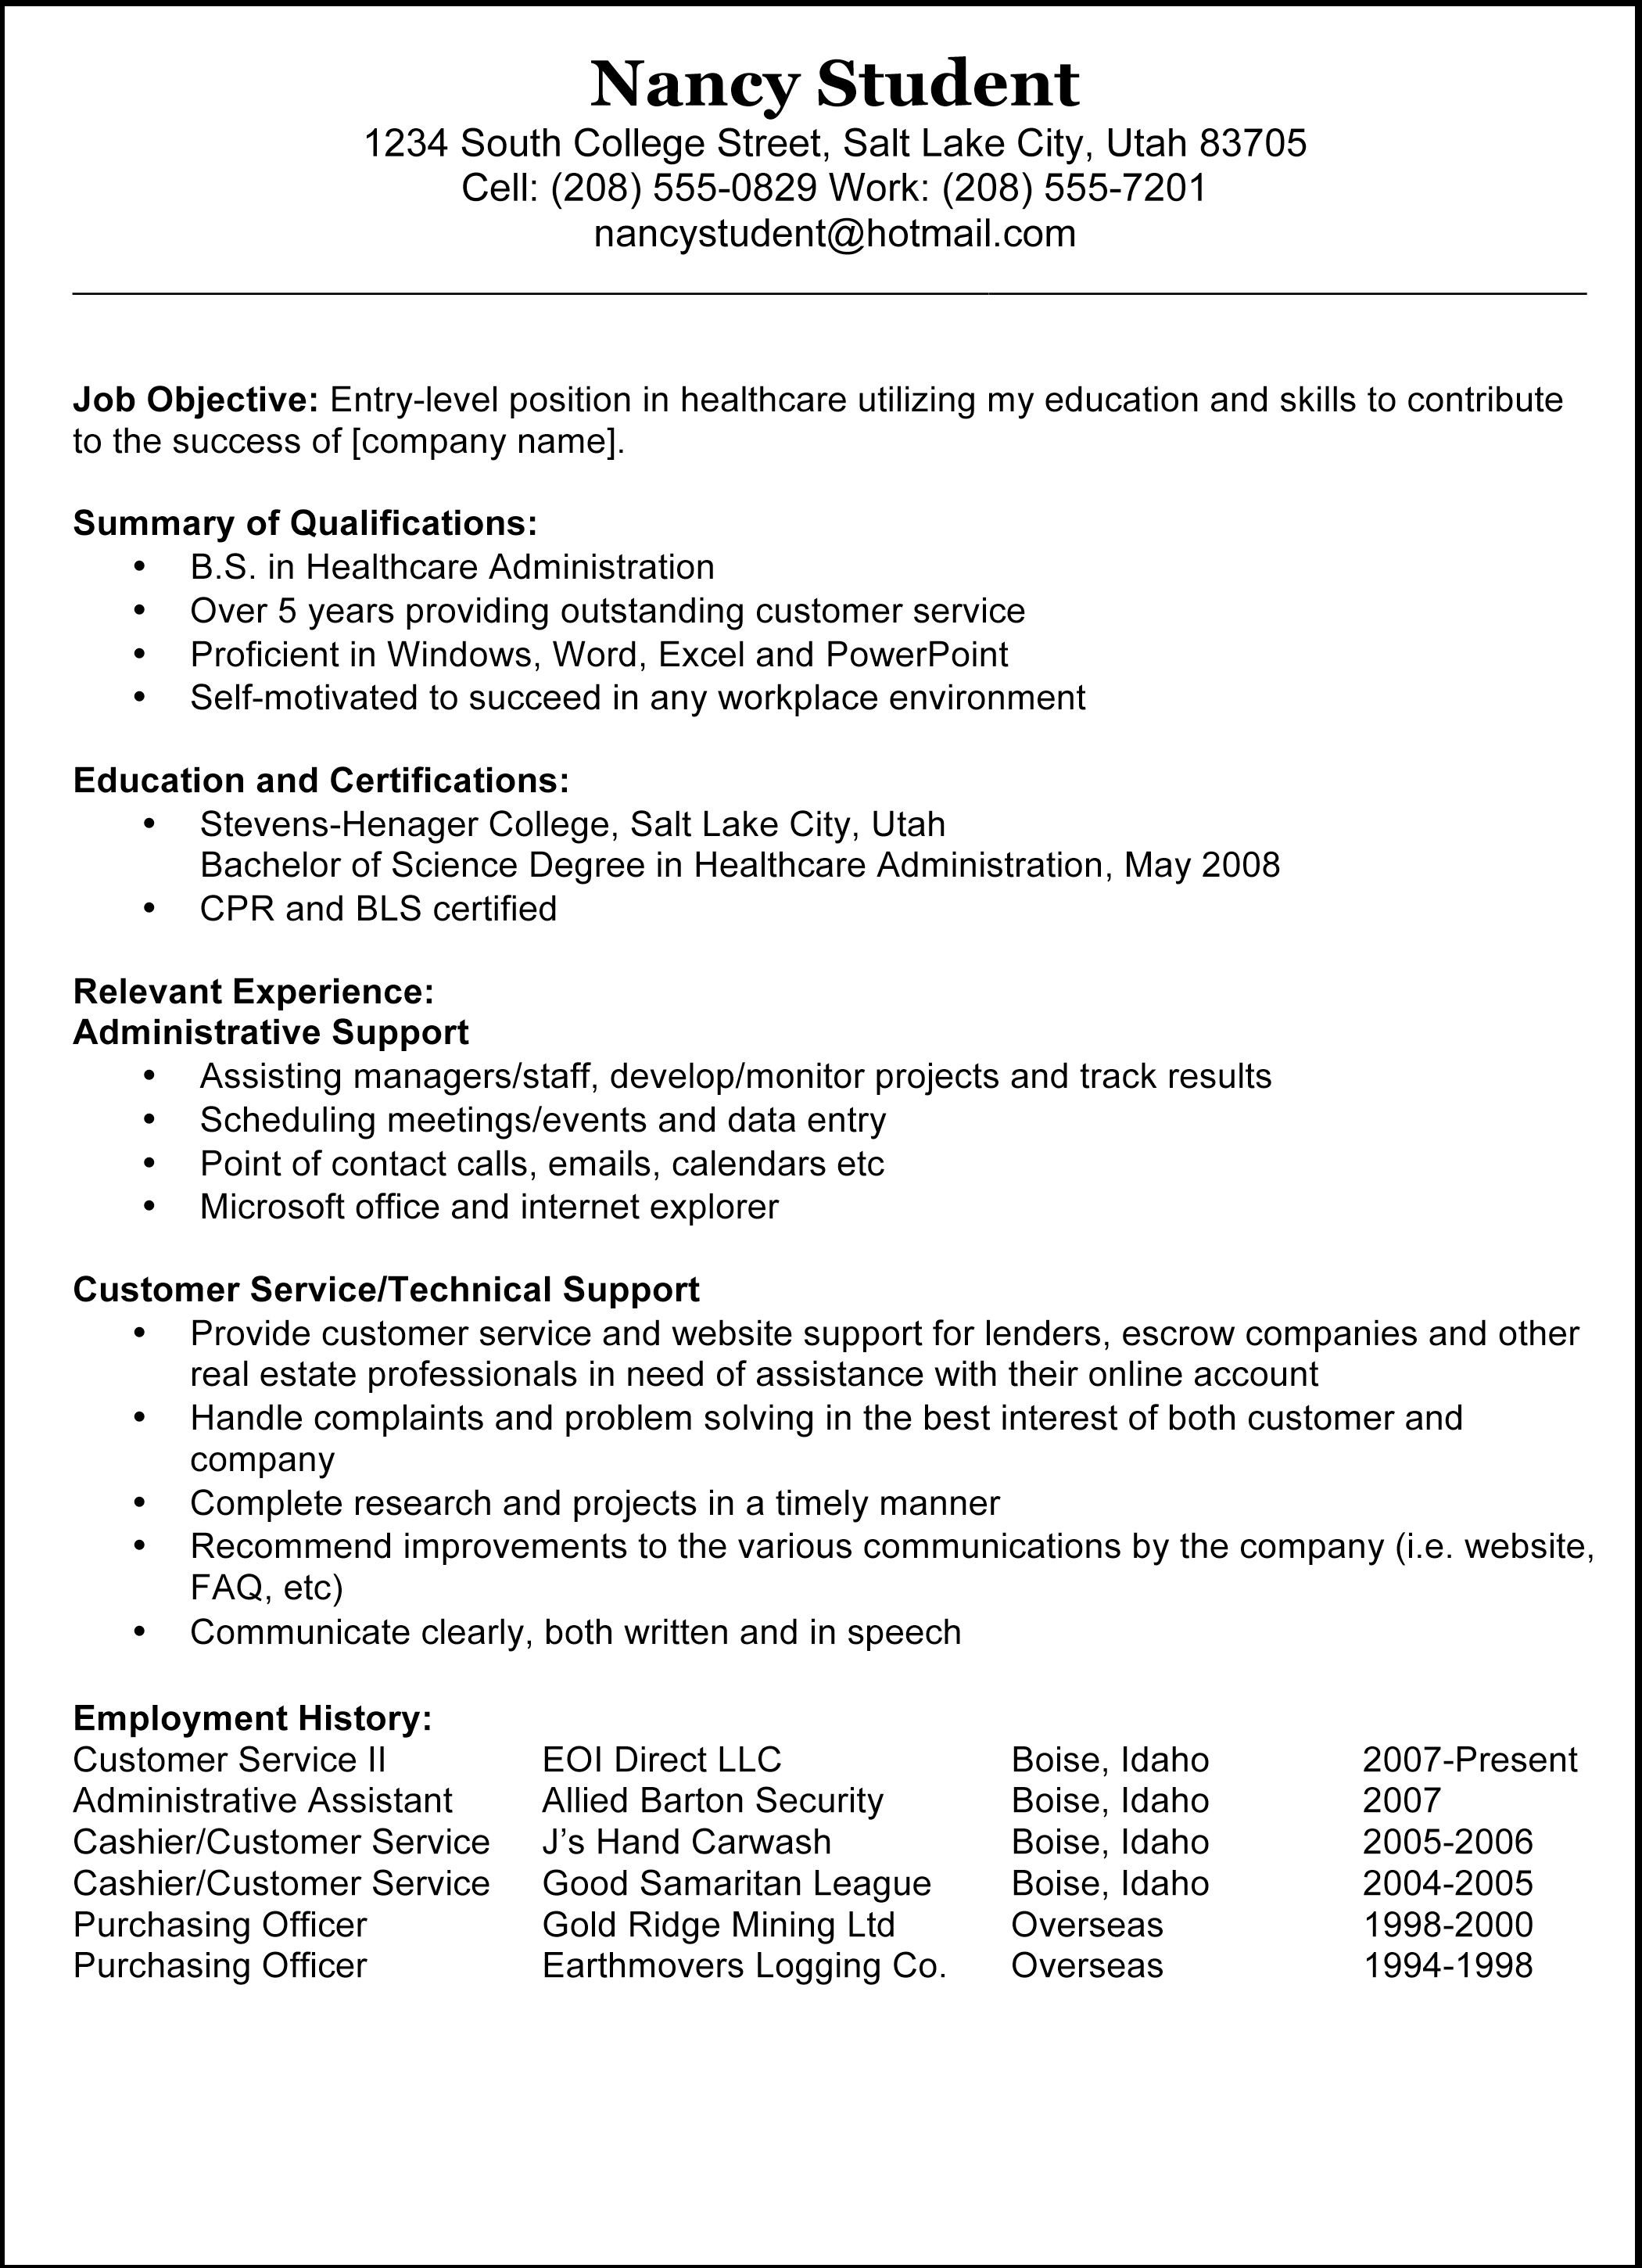 Resume Examples For StudentsSample Resumes Cover Letter Examples ...